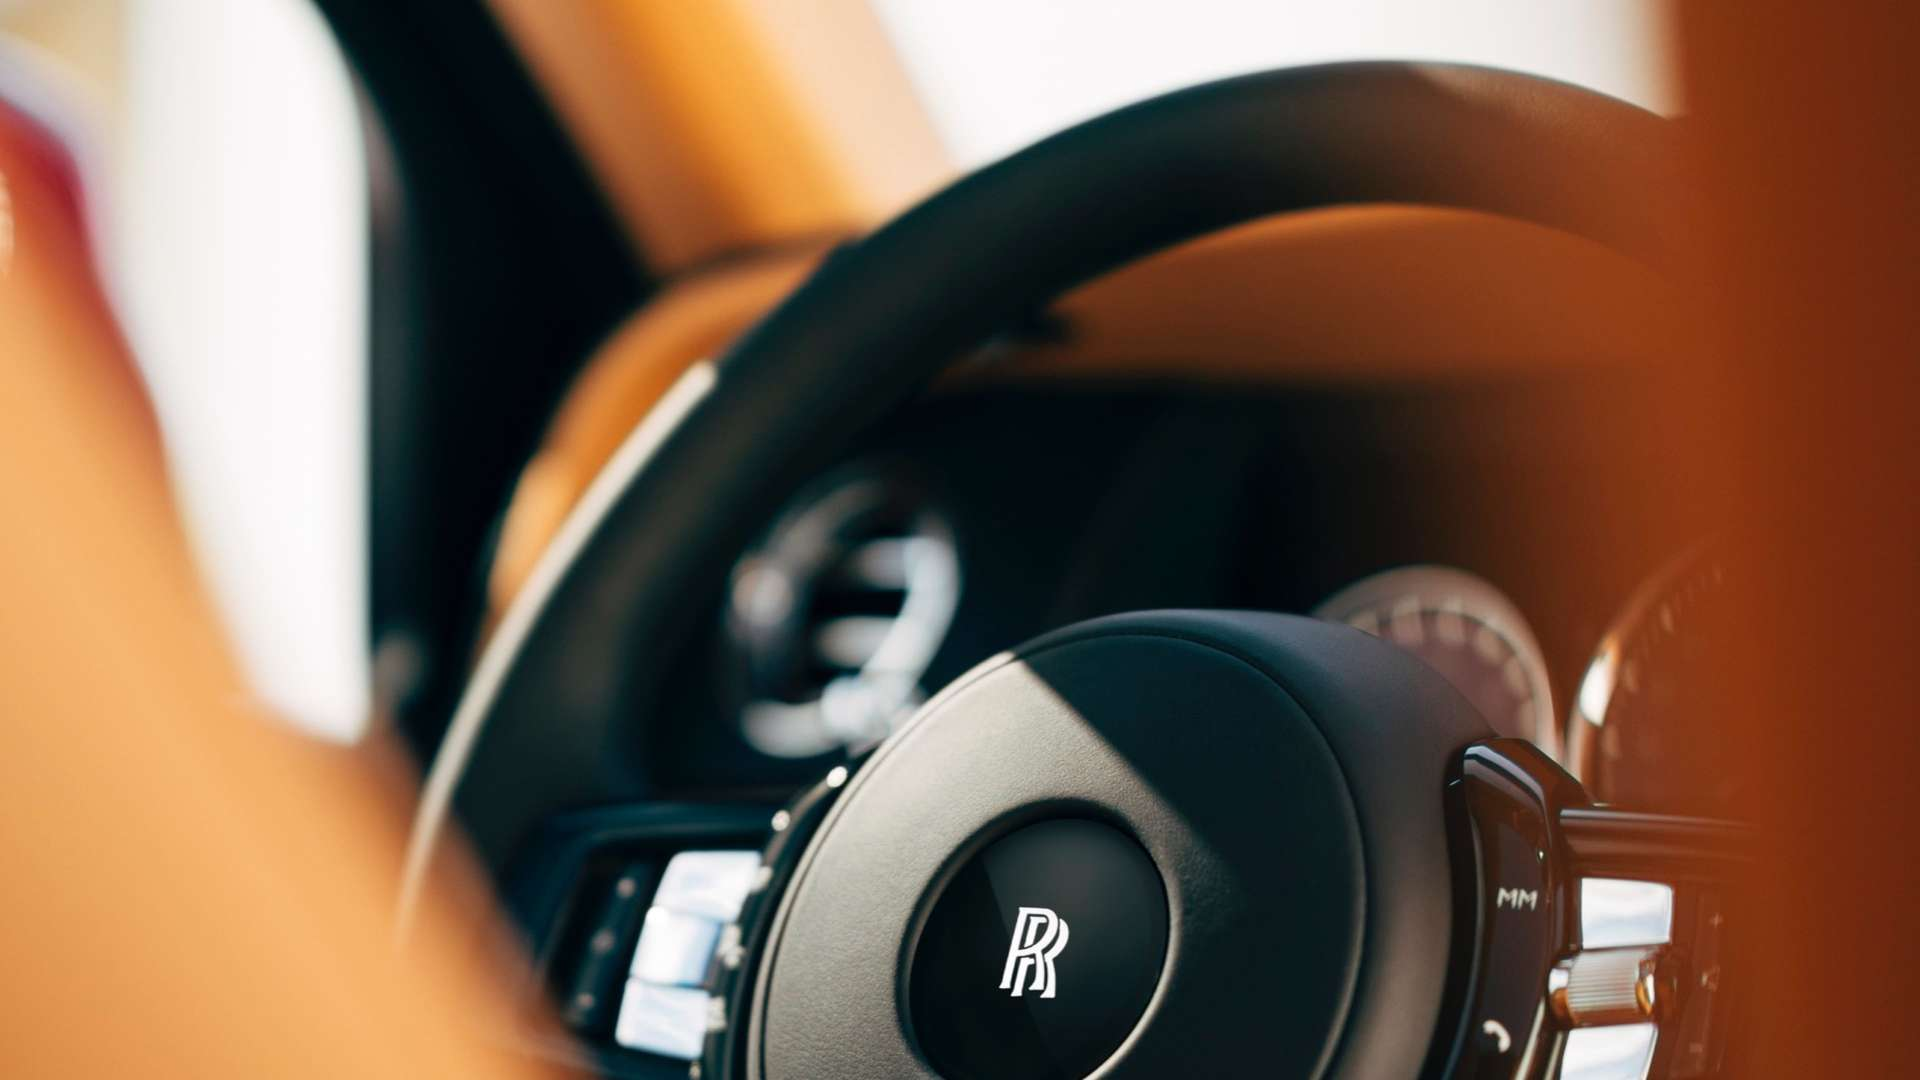 The steering wheel of the Rolls-Royce Cullinan.